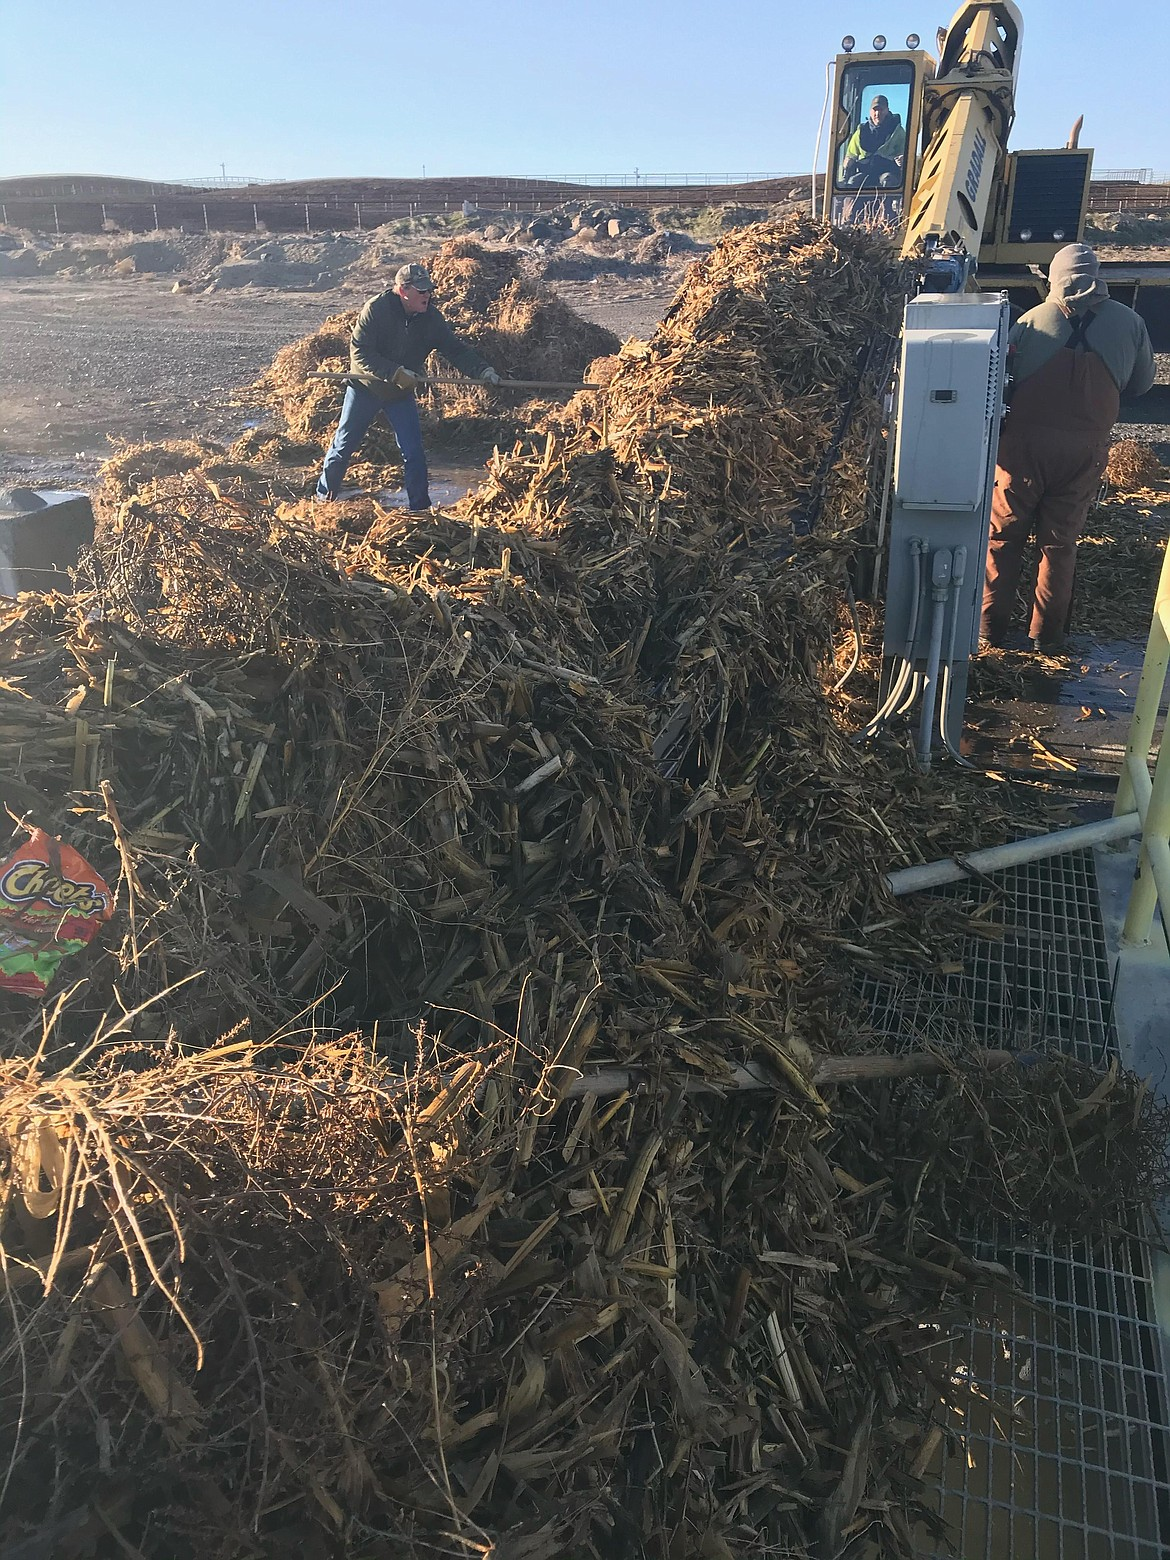 Workers with the Quincy-Columbia Basin Irrigation District clear out weeds, plant debris and trash from an irrigation ditch after a major wind storm in late March.